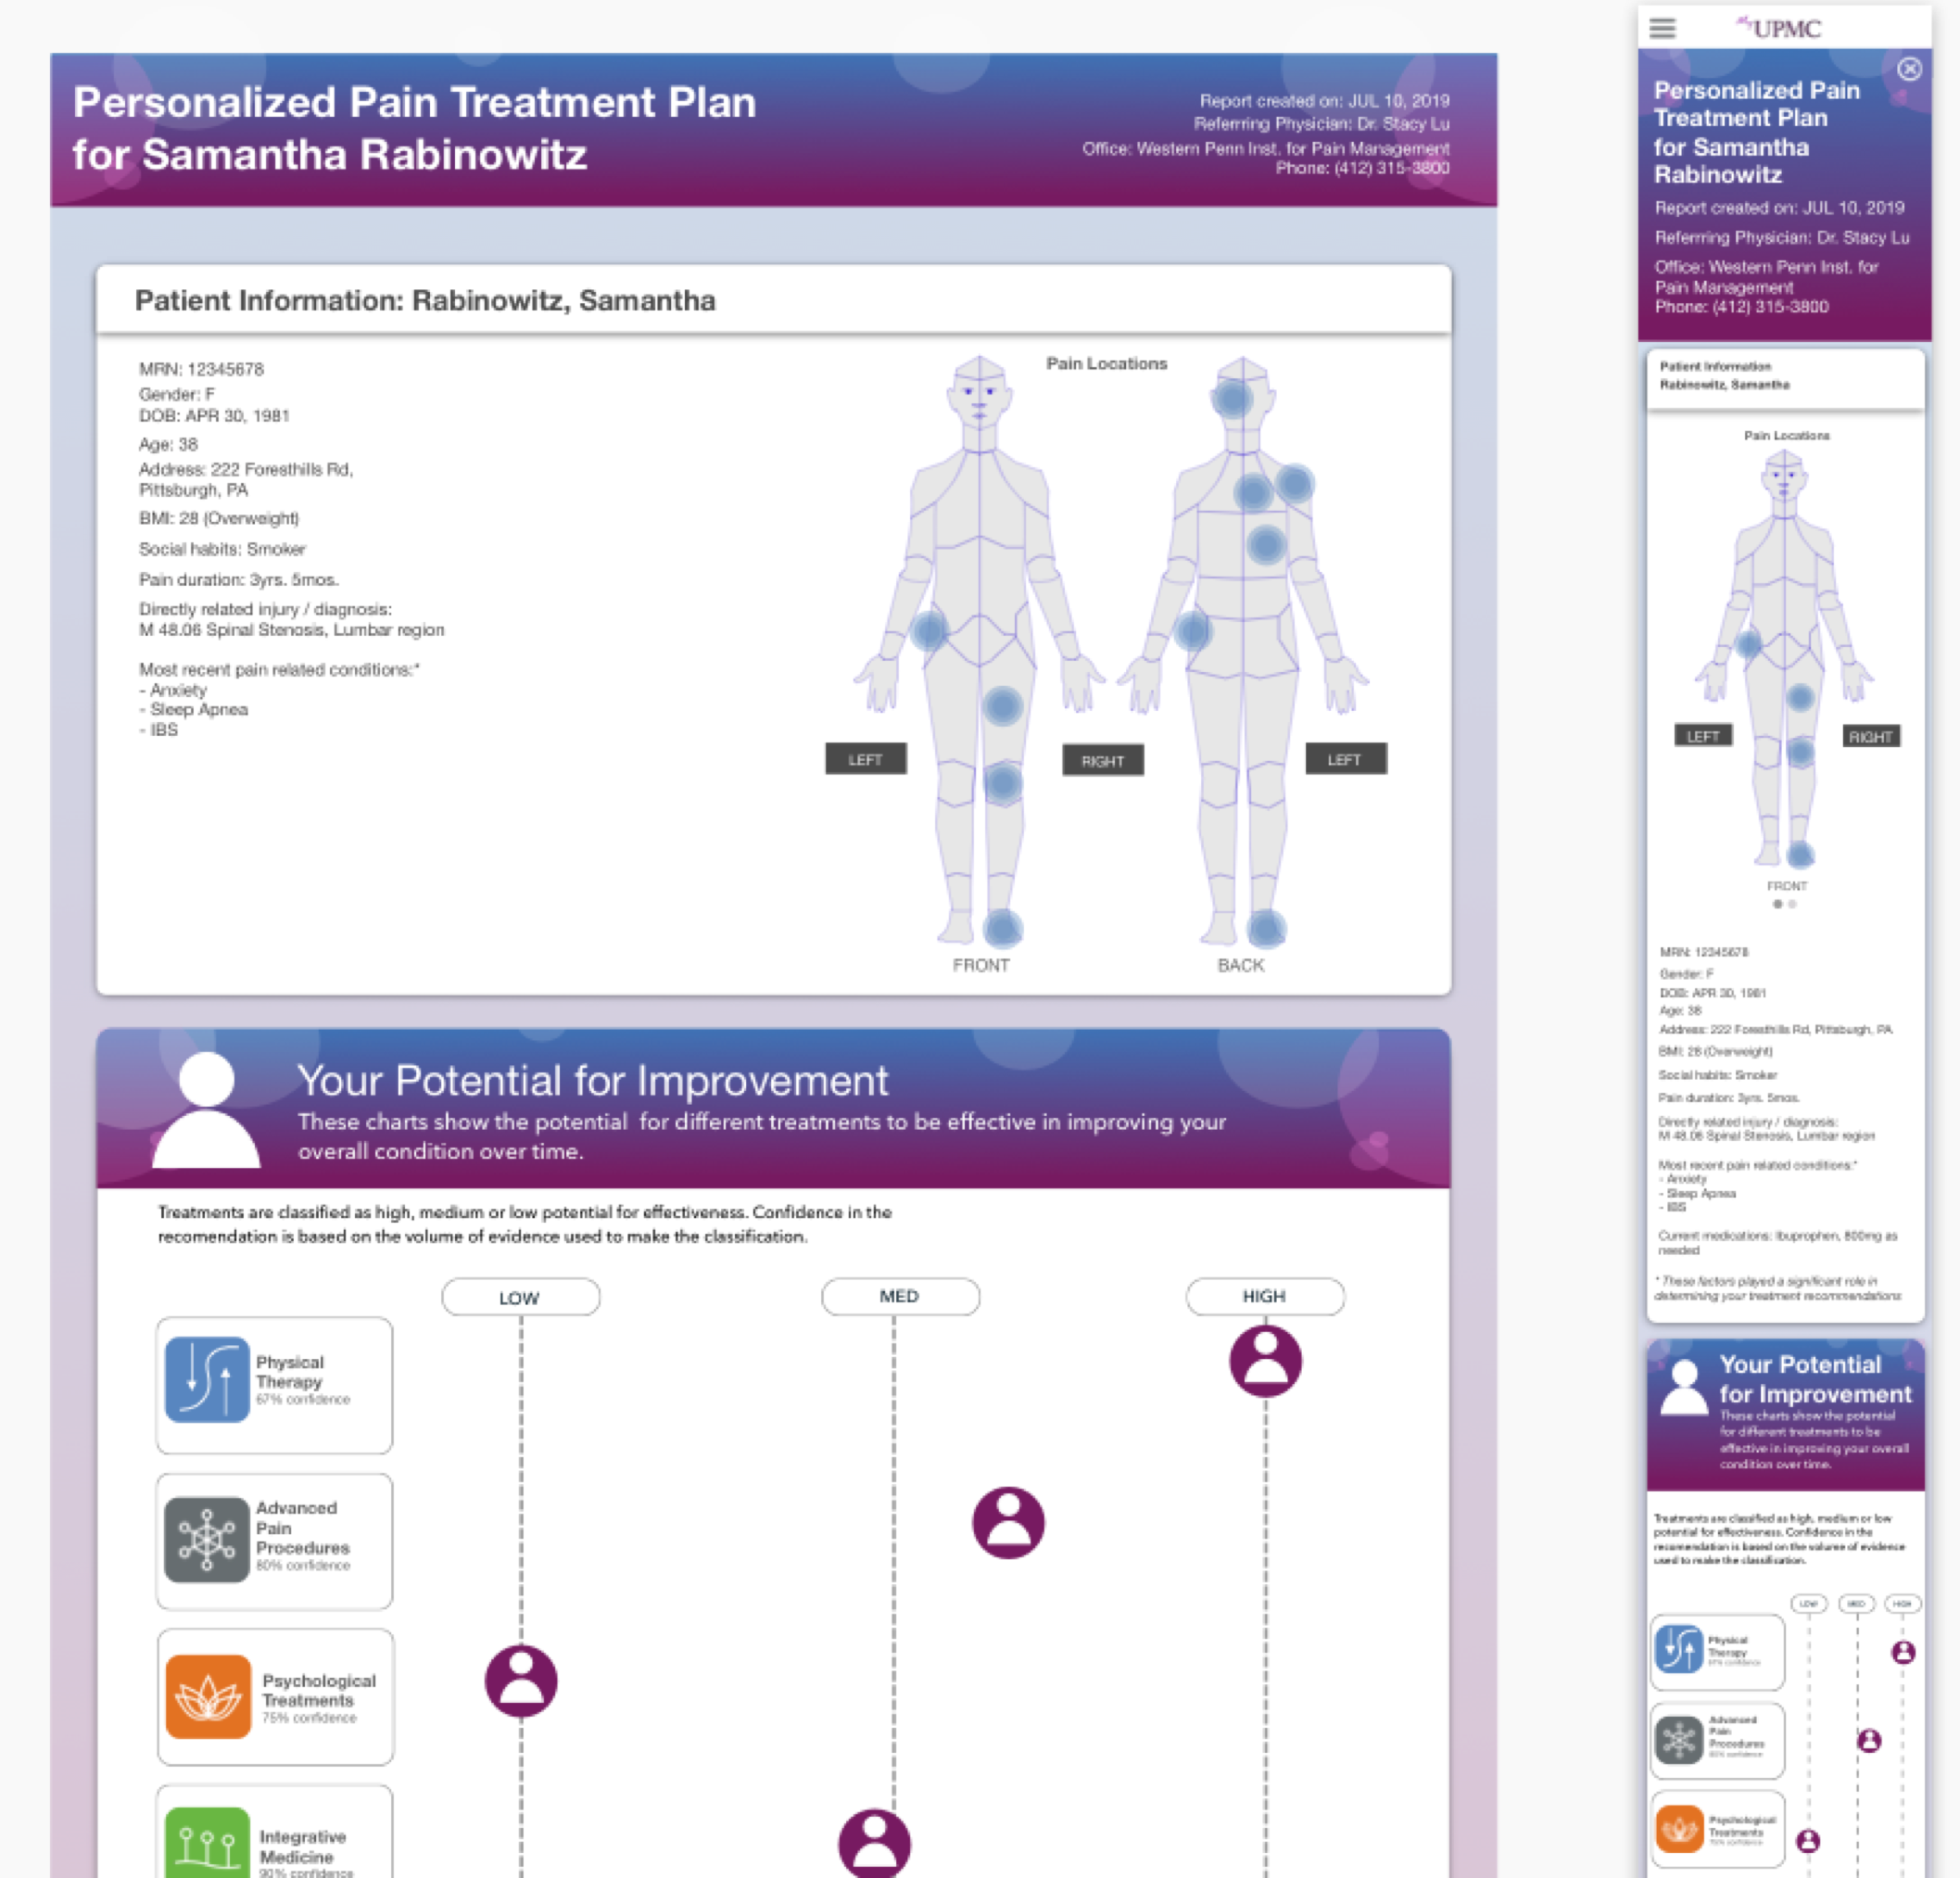 Personalized Pain Treatment - Explore my most recent project where I'm supporting design and research for a software tool that encourages shared decision-making between doctor and patient.